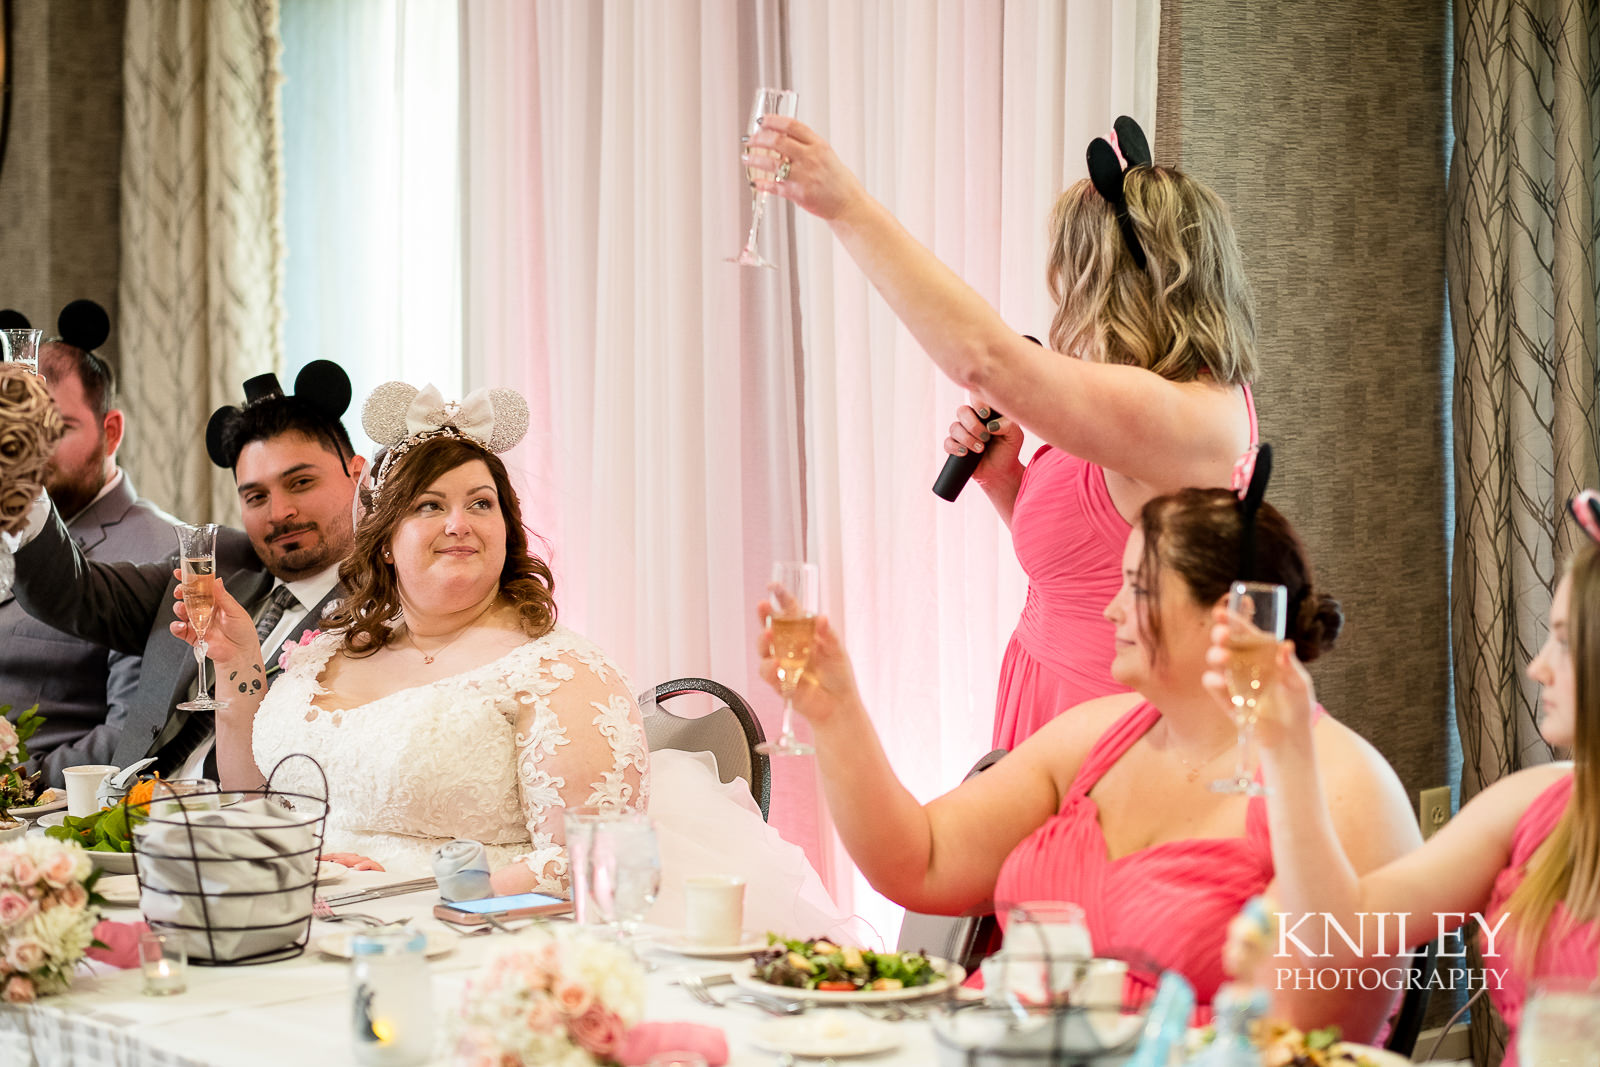 093 - Woodcliff Hotel - Rochester NY wedding photo - Kniley Photography.jpg